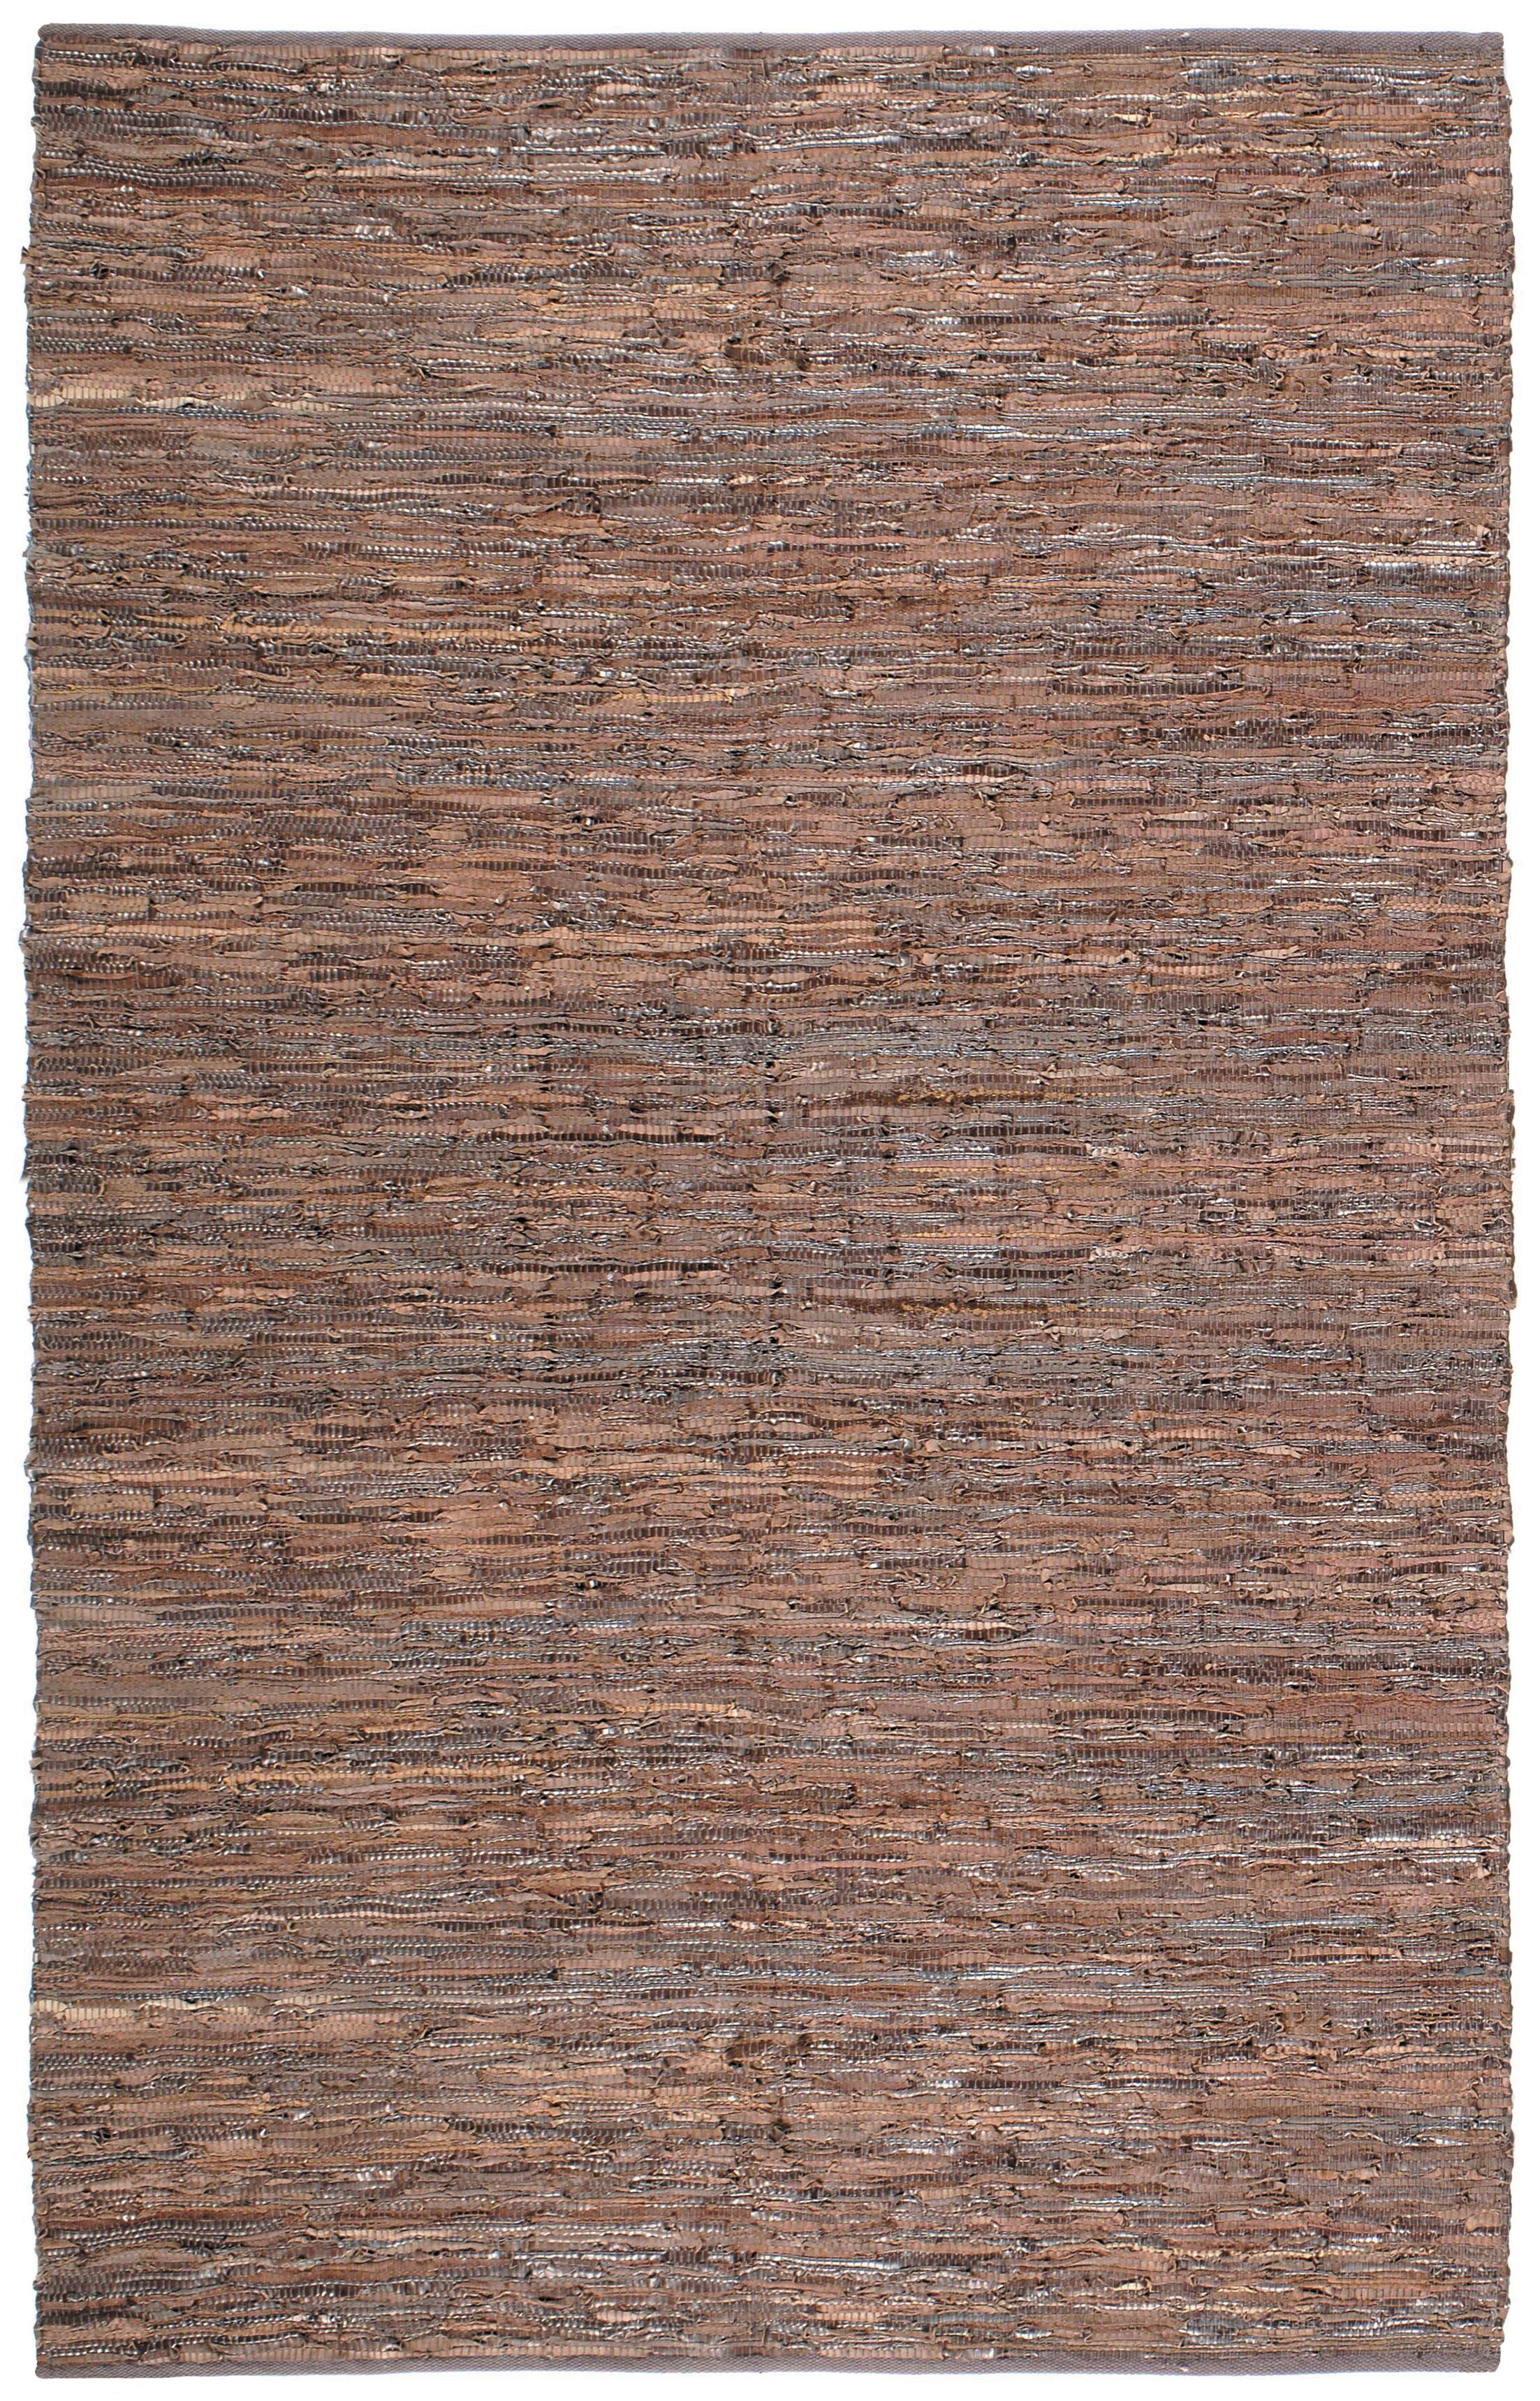 Sandford Chindi Hand Woven Cotton Brown Area Rug Rug Size: 5' x 8'